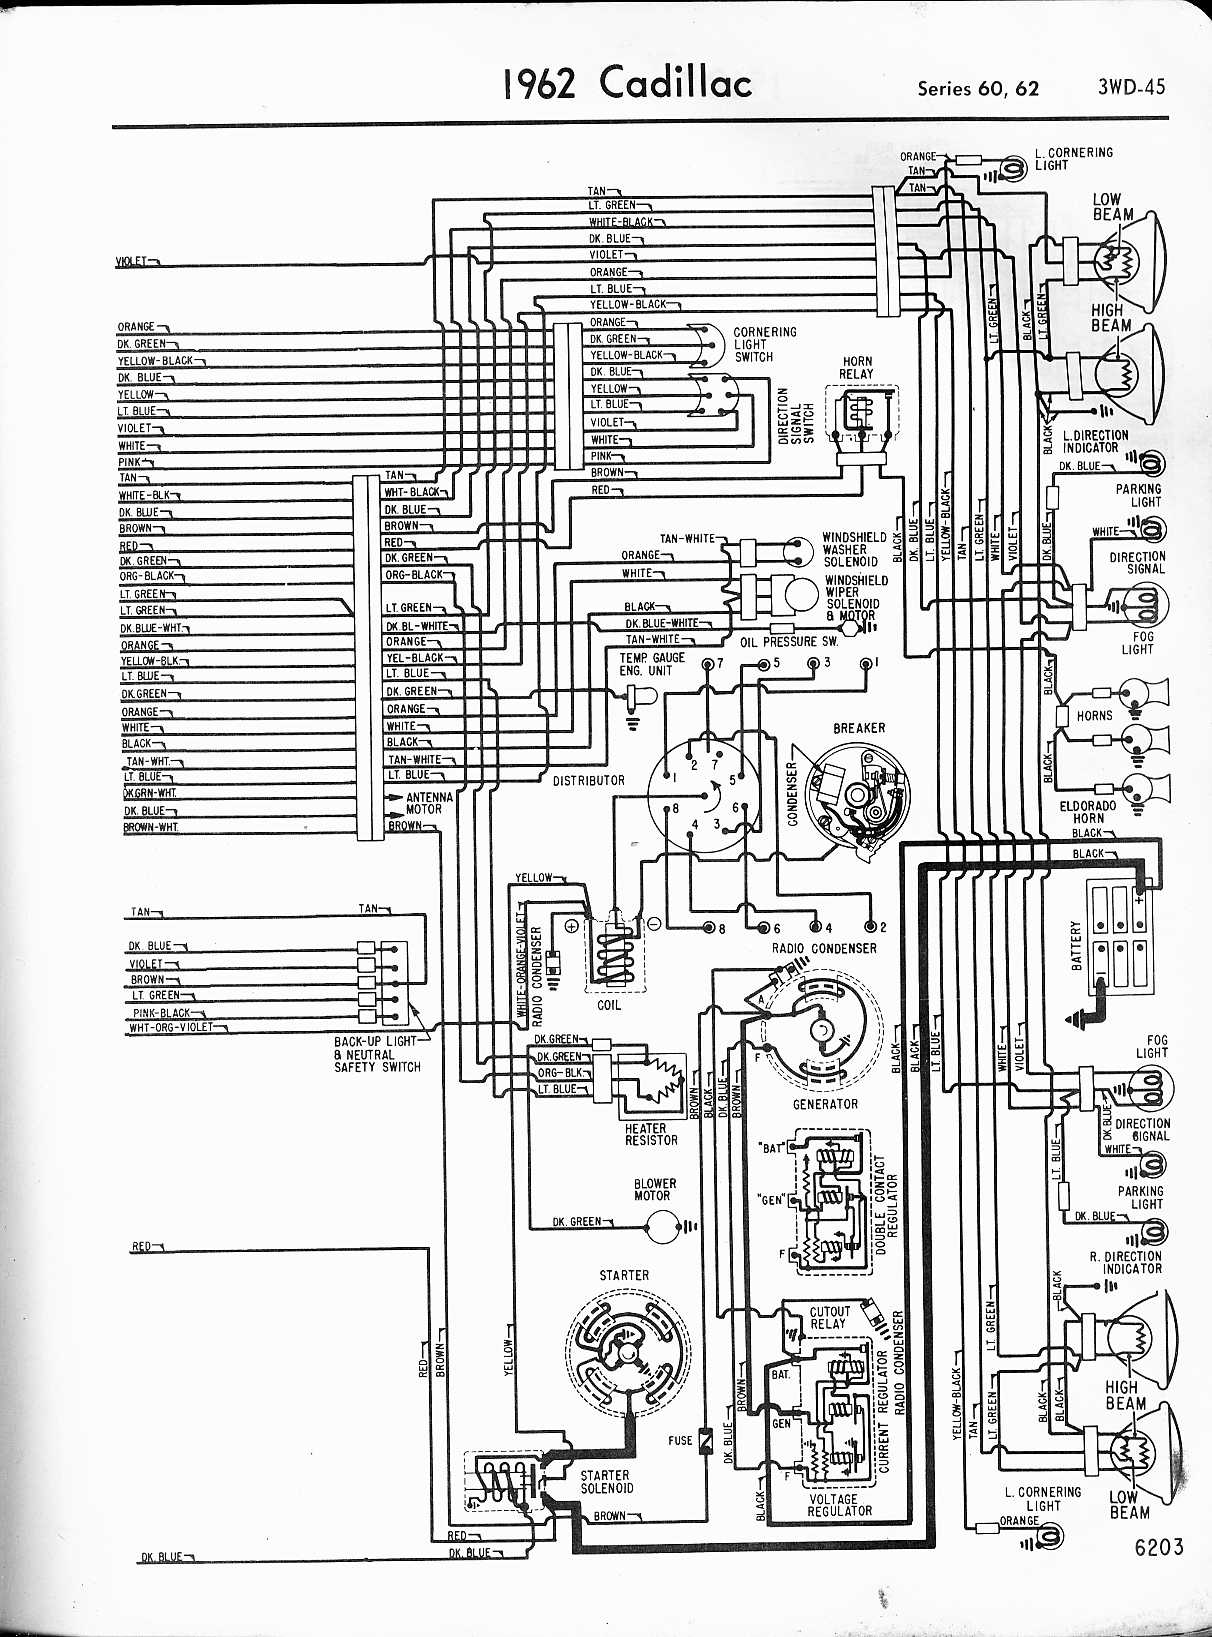 55 Cadillac Wiring Diagram Another Diagrams Fox Battery Charger 1957 1965 Rh Oldcarmanualproject Com 67 Deville Harness 2003 Cts